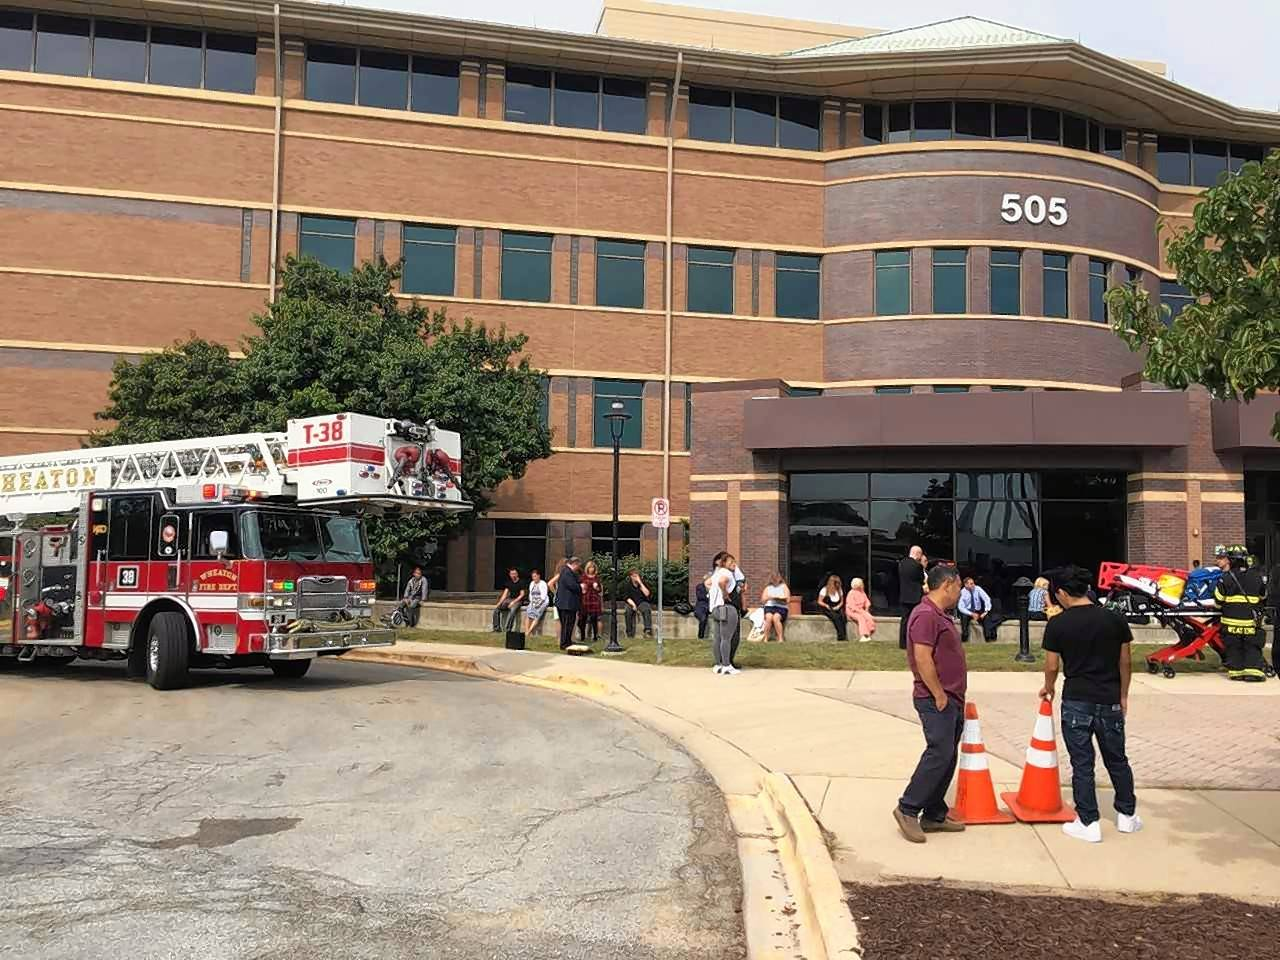 An evacuation of the DuPage County Judicial Center lasted for less than a half-hour.